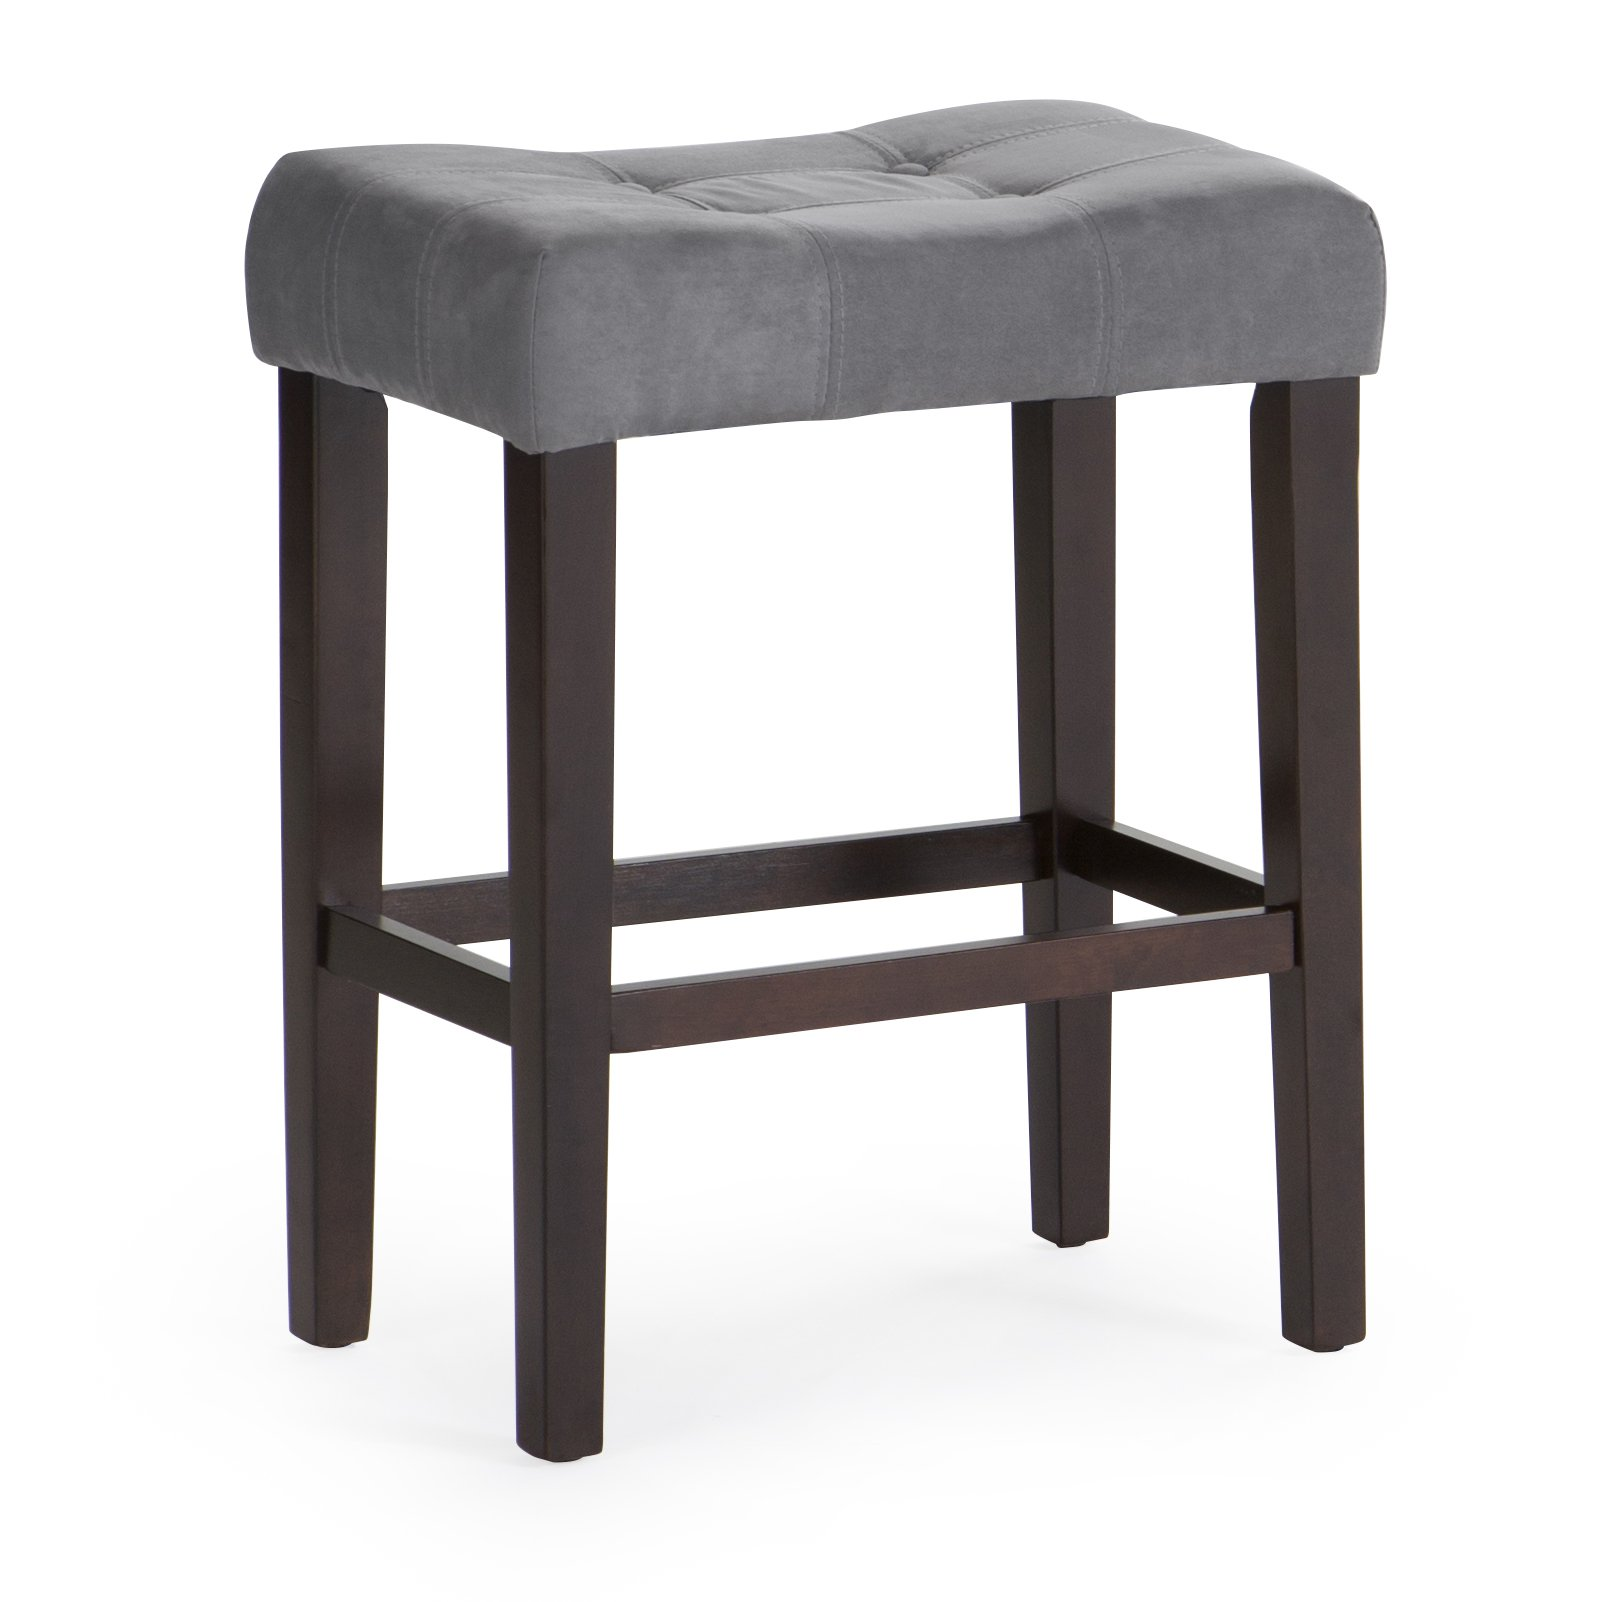 26 inch bar stools Palazzo 26 Inch Saddle Counter Stool   Walmart.com 26 inch bar stools